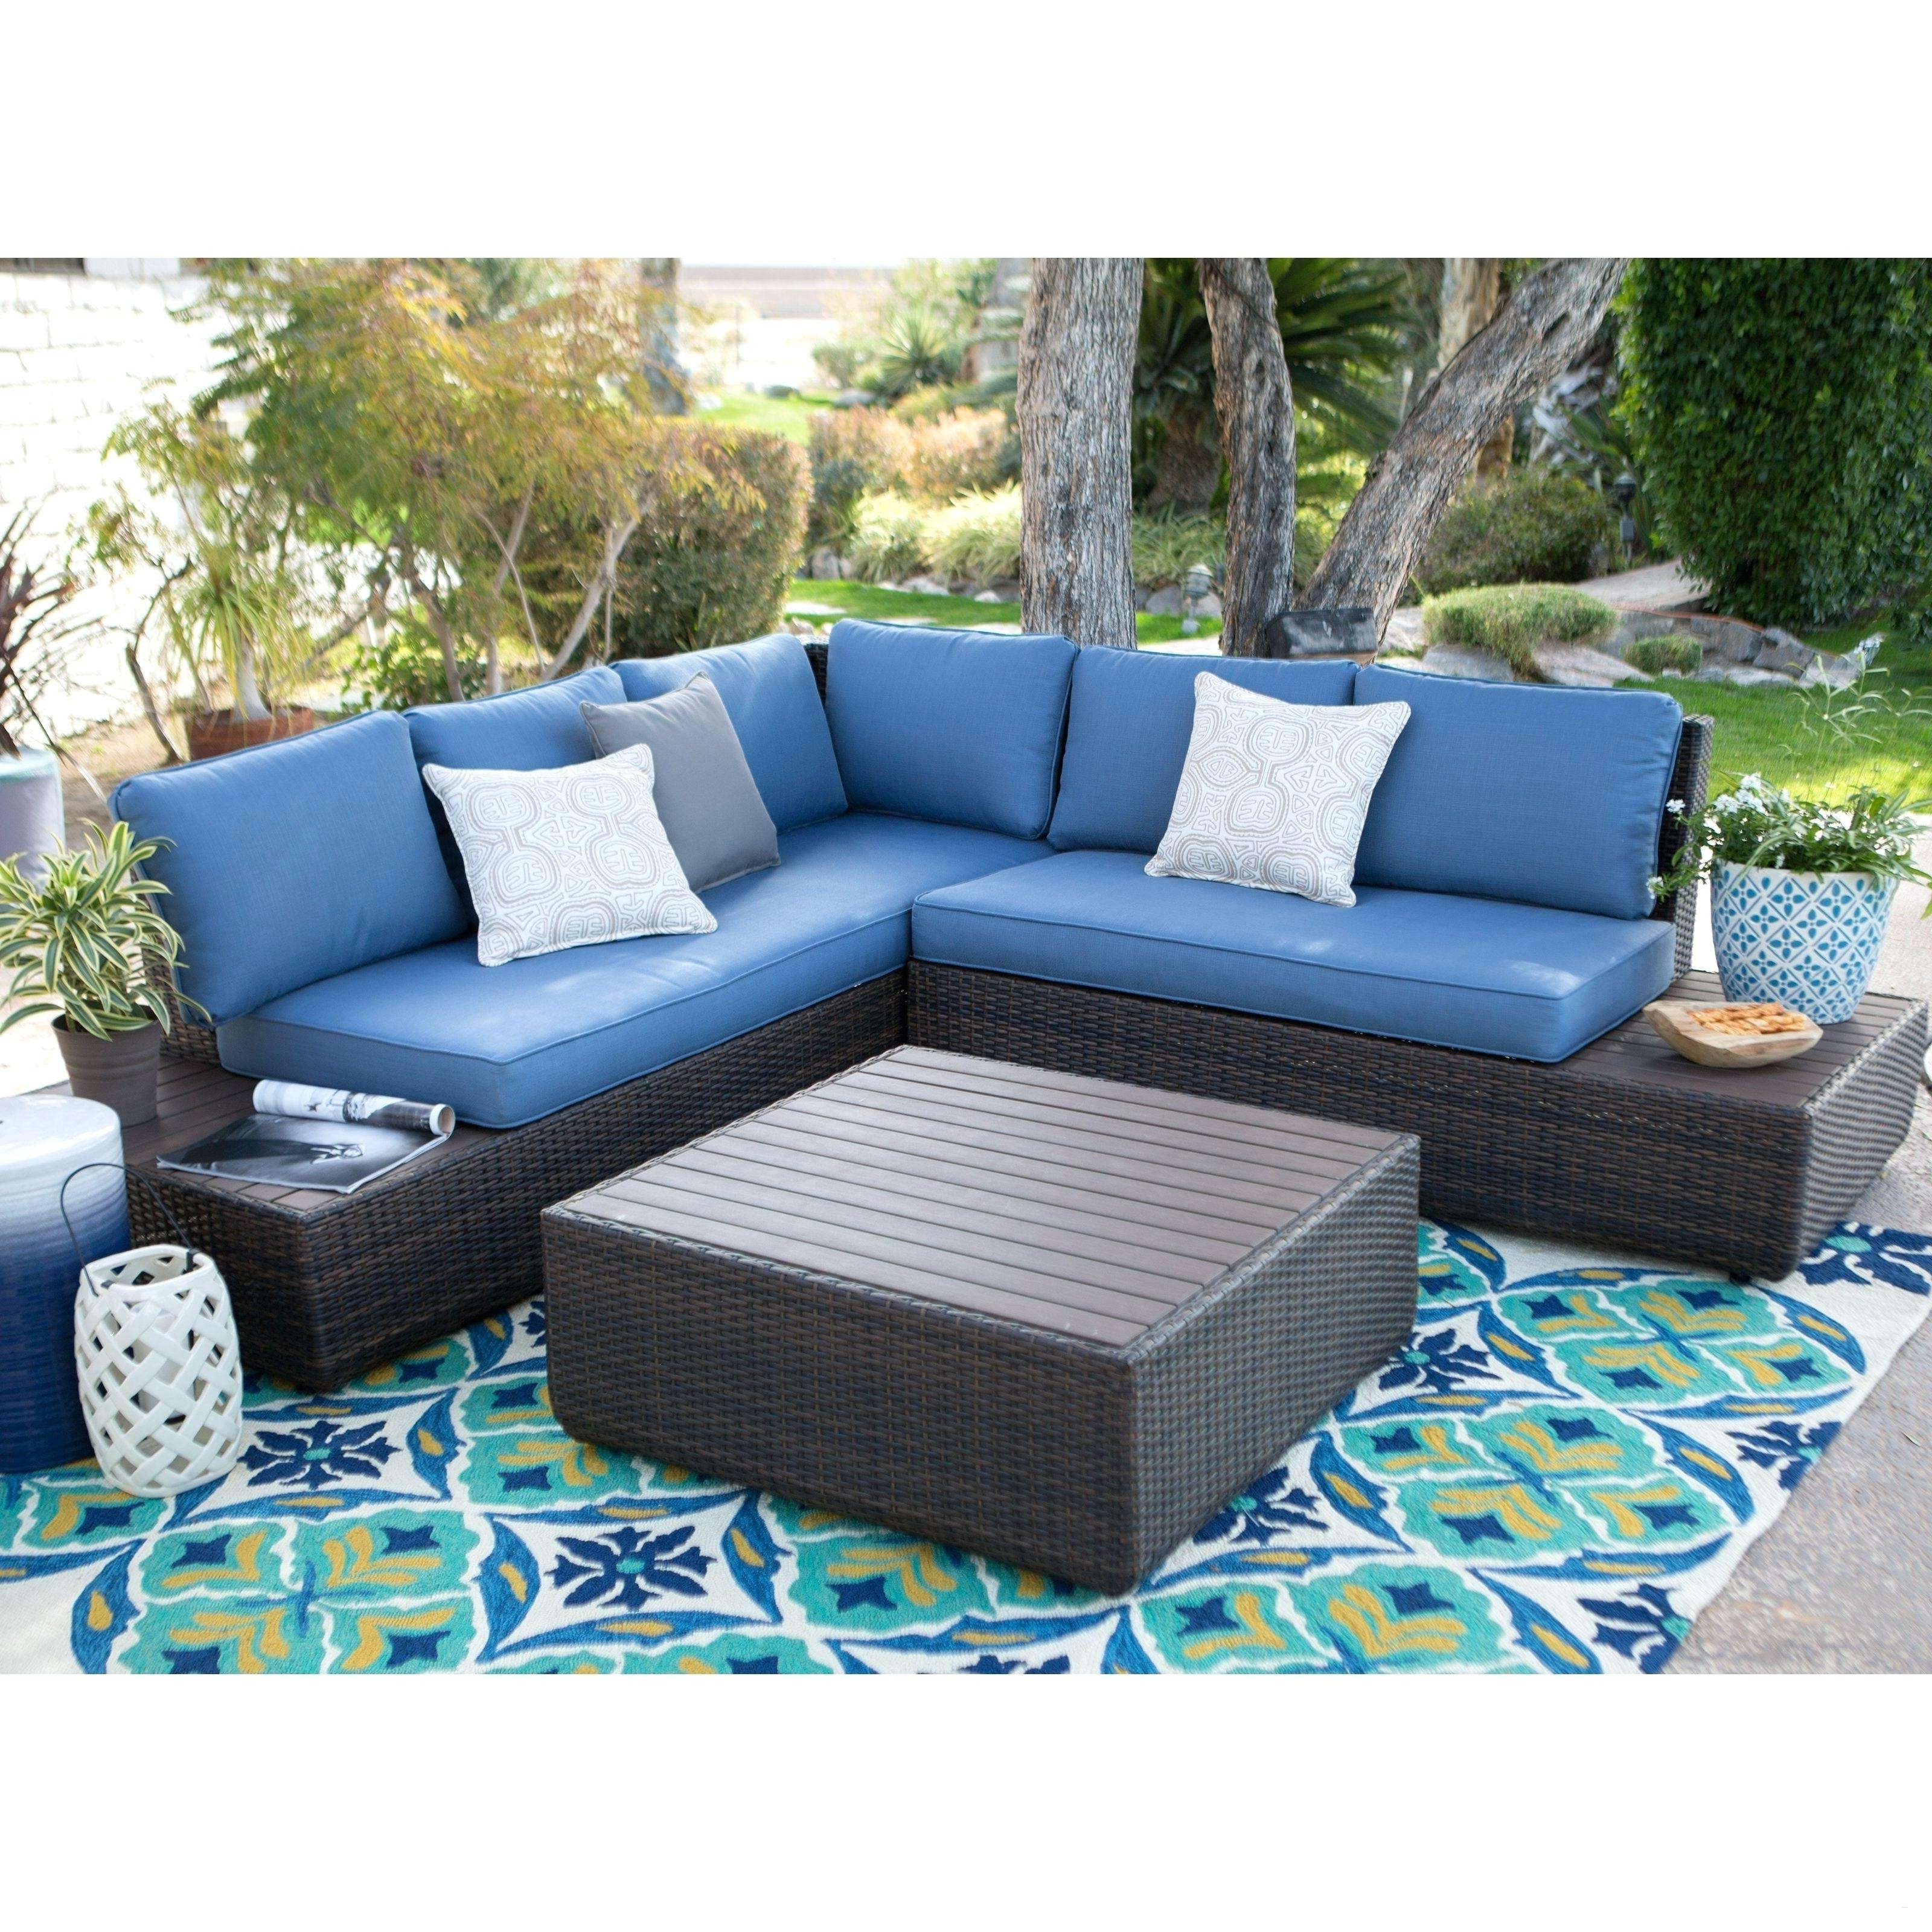 30 Fresh Pier 1 Outdoor Furniture Design – Jsmorganicsfarm In Widely Used Pier One Patio Conversation Sets (View 17 of 20)